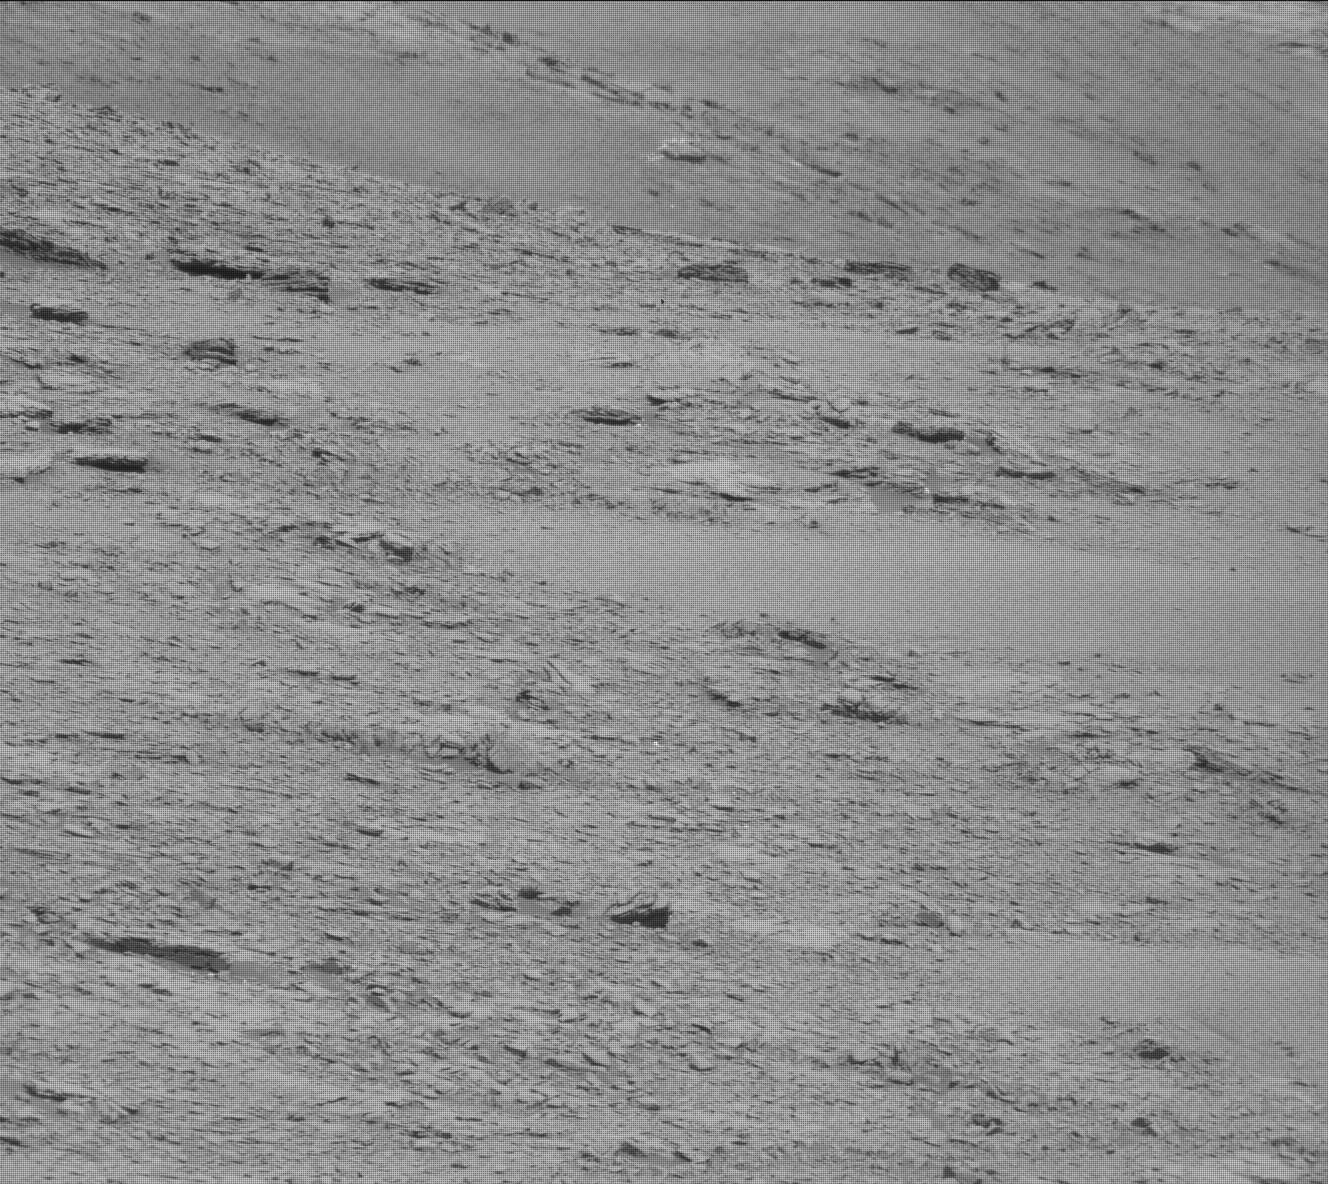 Nasa's Mars rover Curiosity acquired this image using its Mast Camera (Mastcam) on Sol 2484